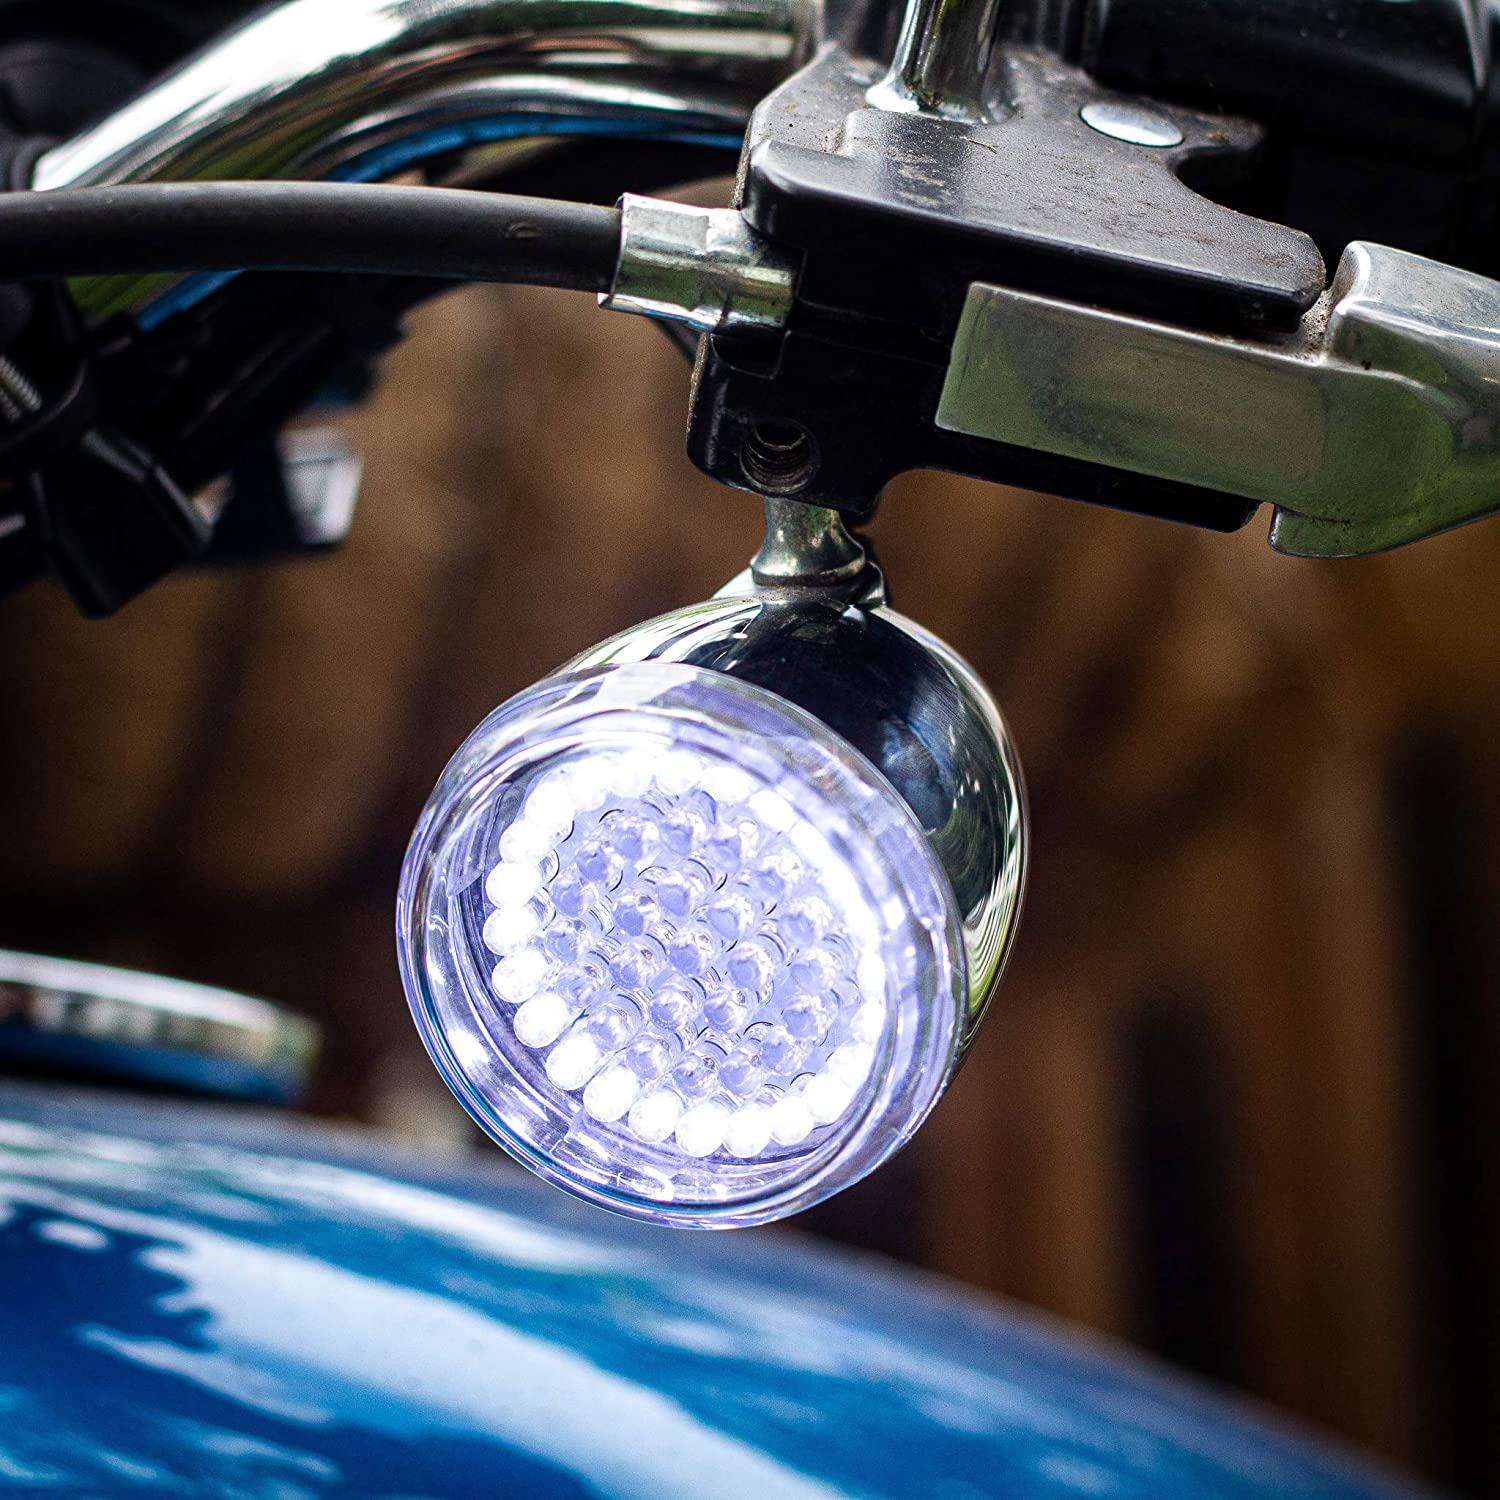 and Rear Red LED Turn Signal Kit, Add Clear Lenses 1156 Eagle Lights Harley 2 Inch LED Turn Signal Kit 1157 Front